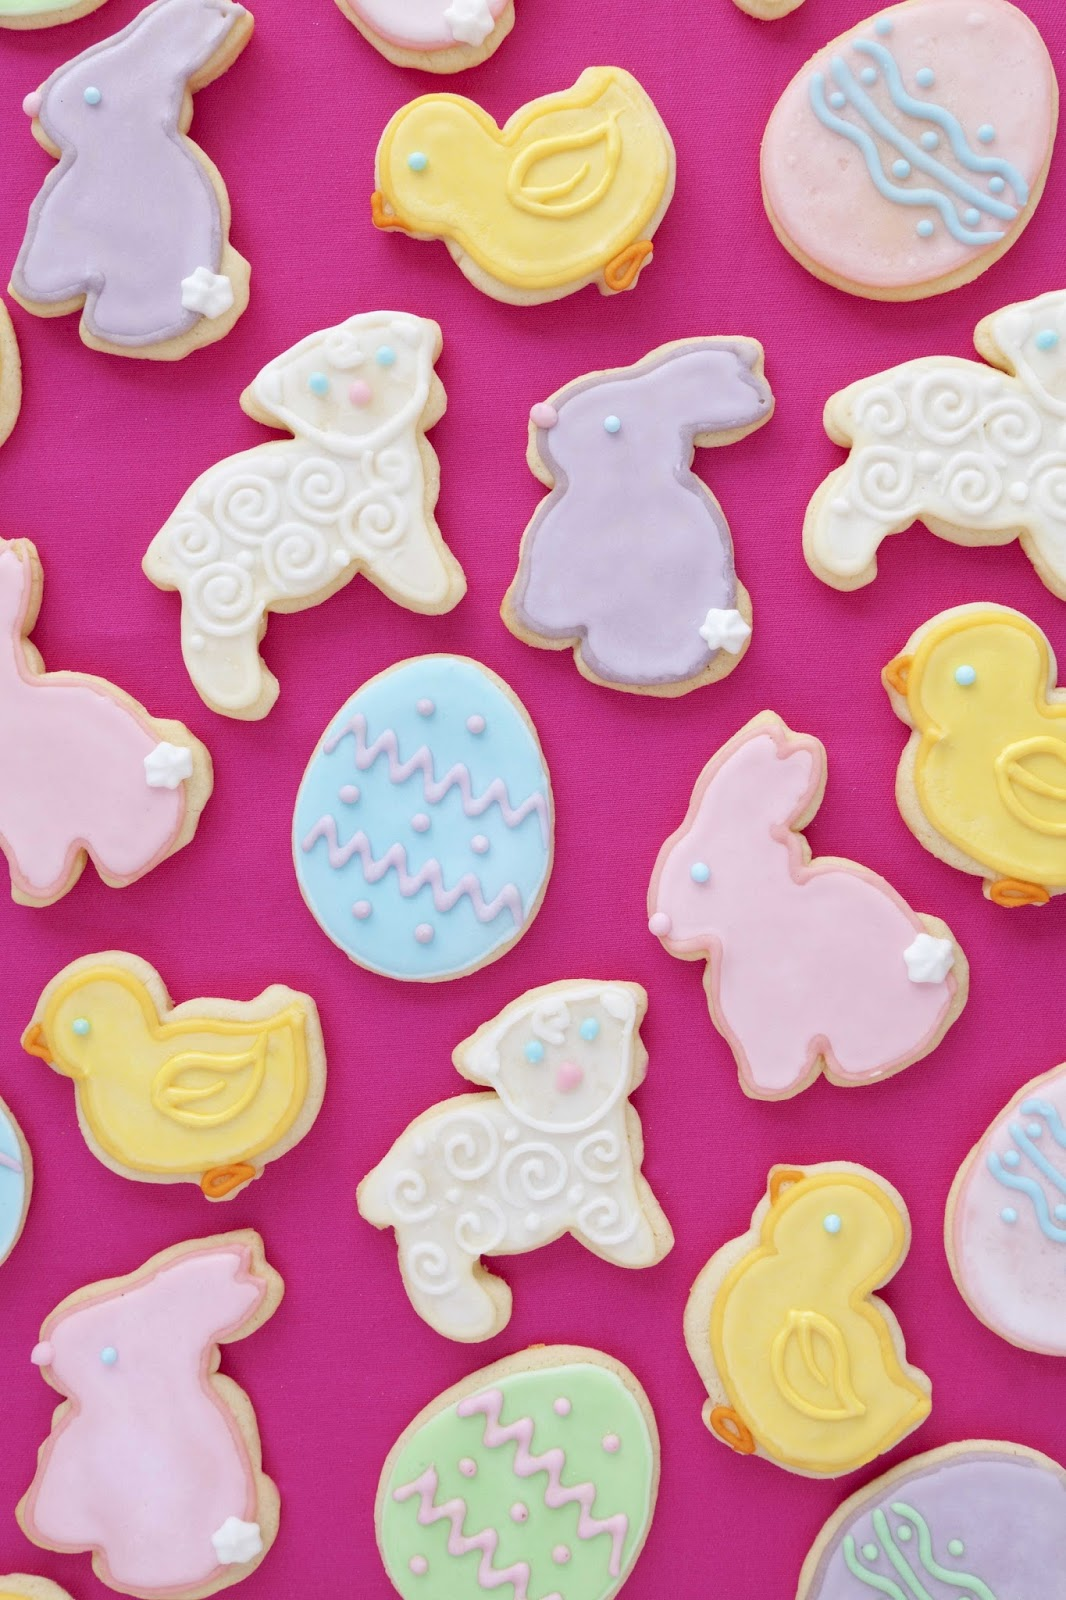 How To Make Delamere Spiced Easter Biscuits: